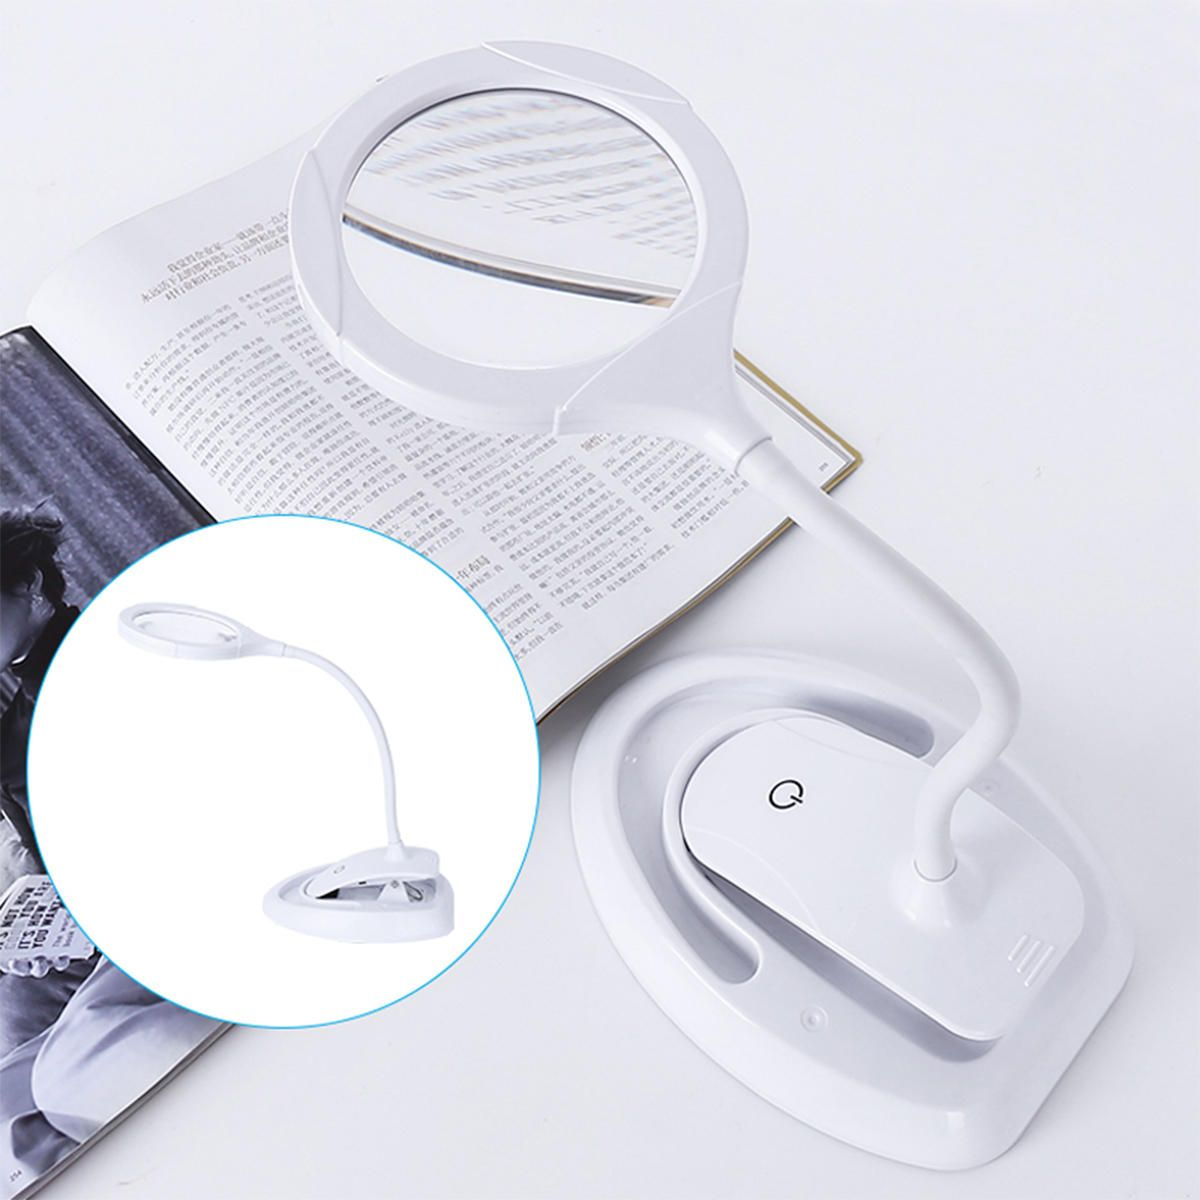 OQK US$27.80 3 Gears Handheld Magnifier 5-10X Reading Magnifying Glass Lens Loupe with 15 LED Lights